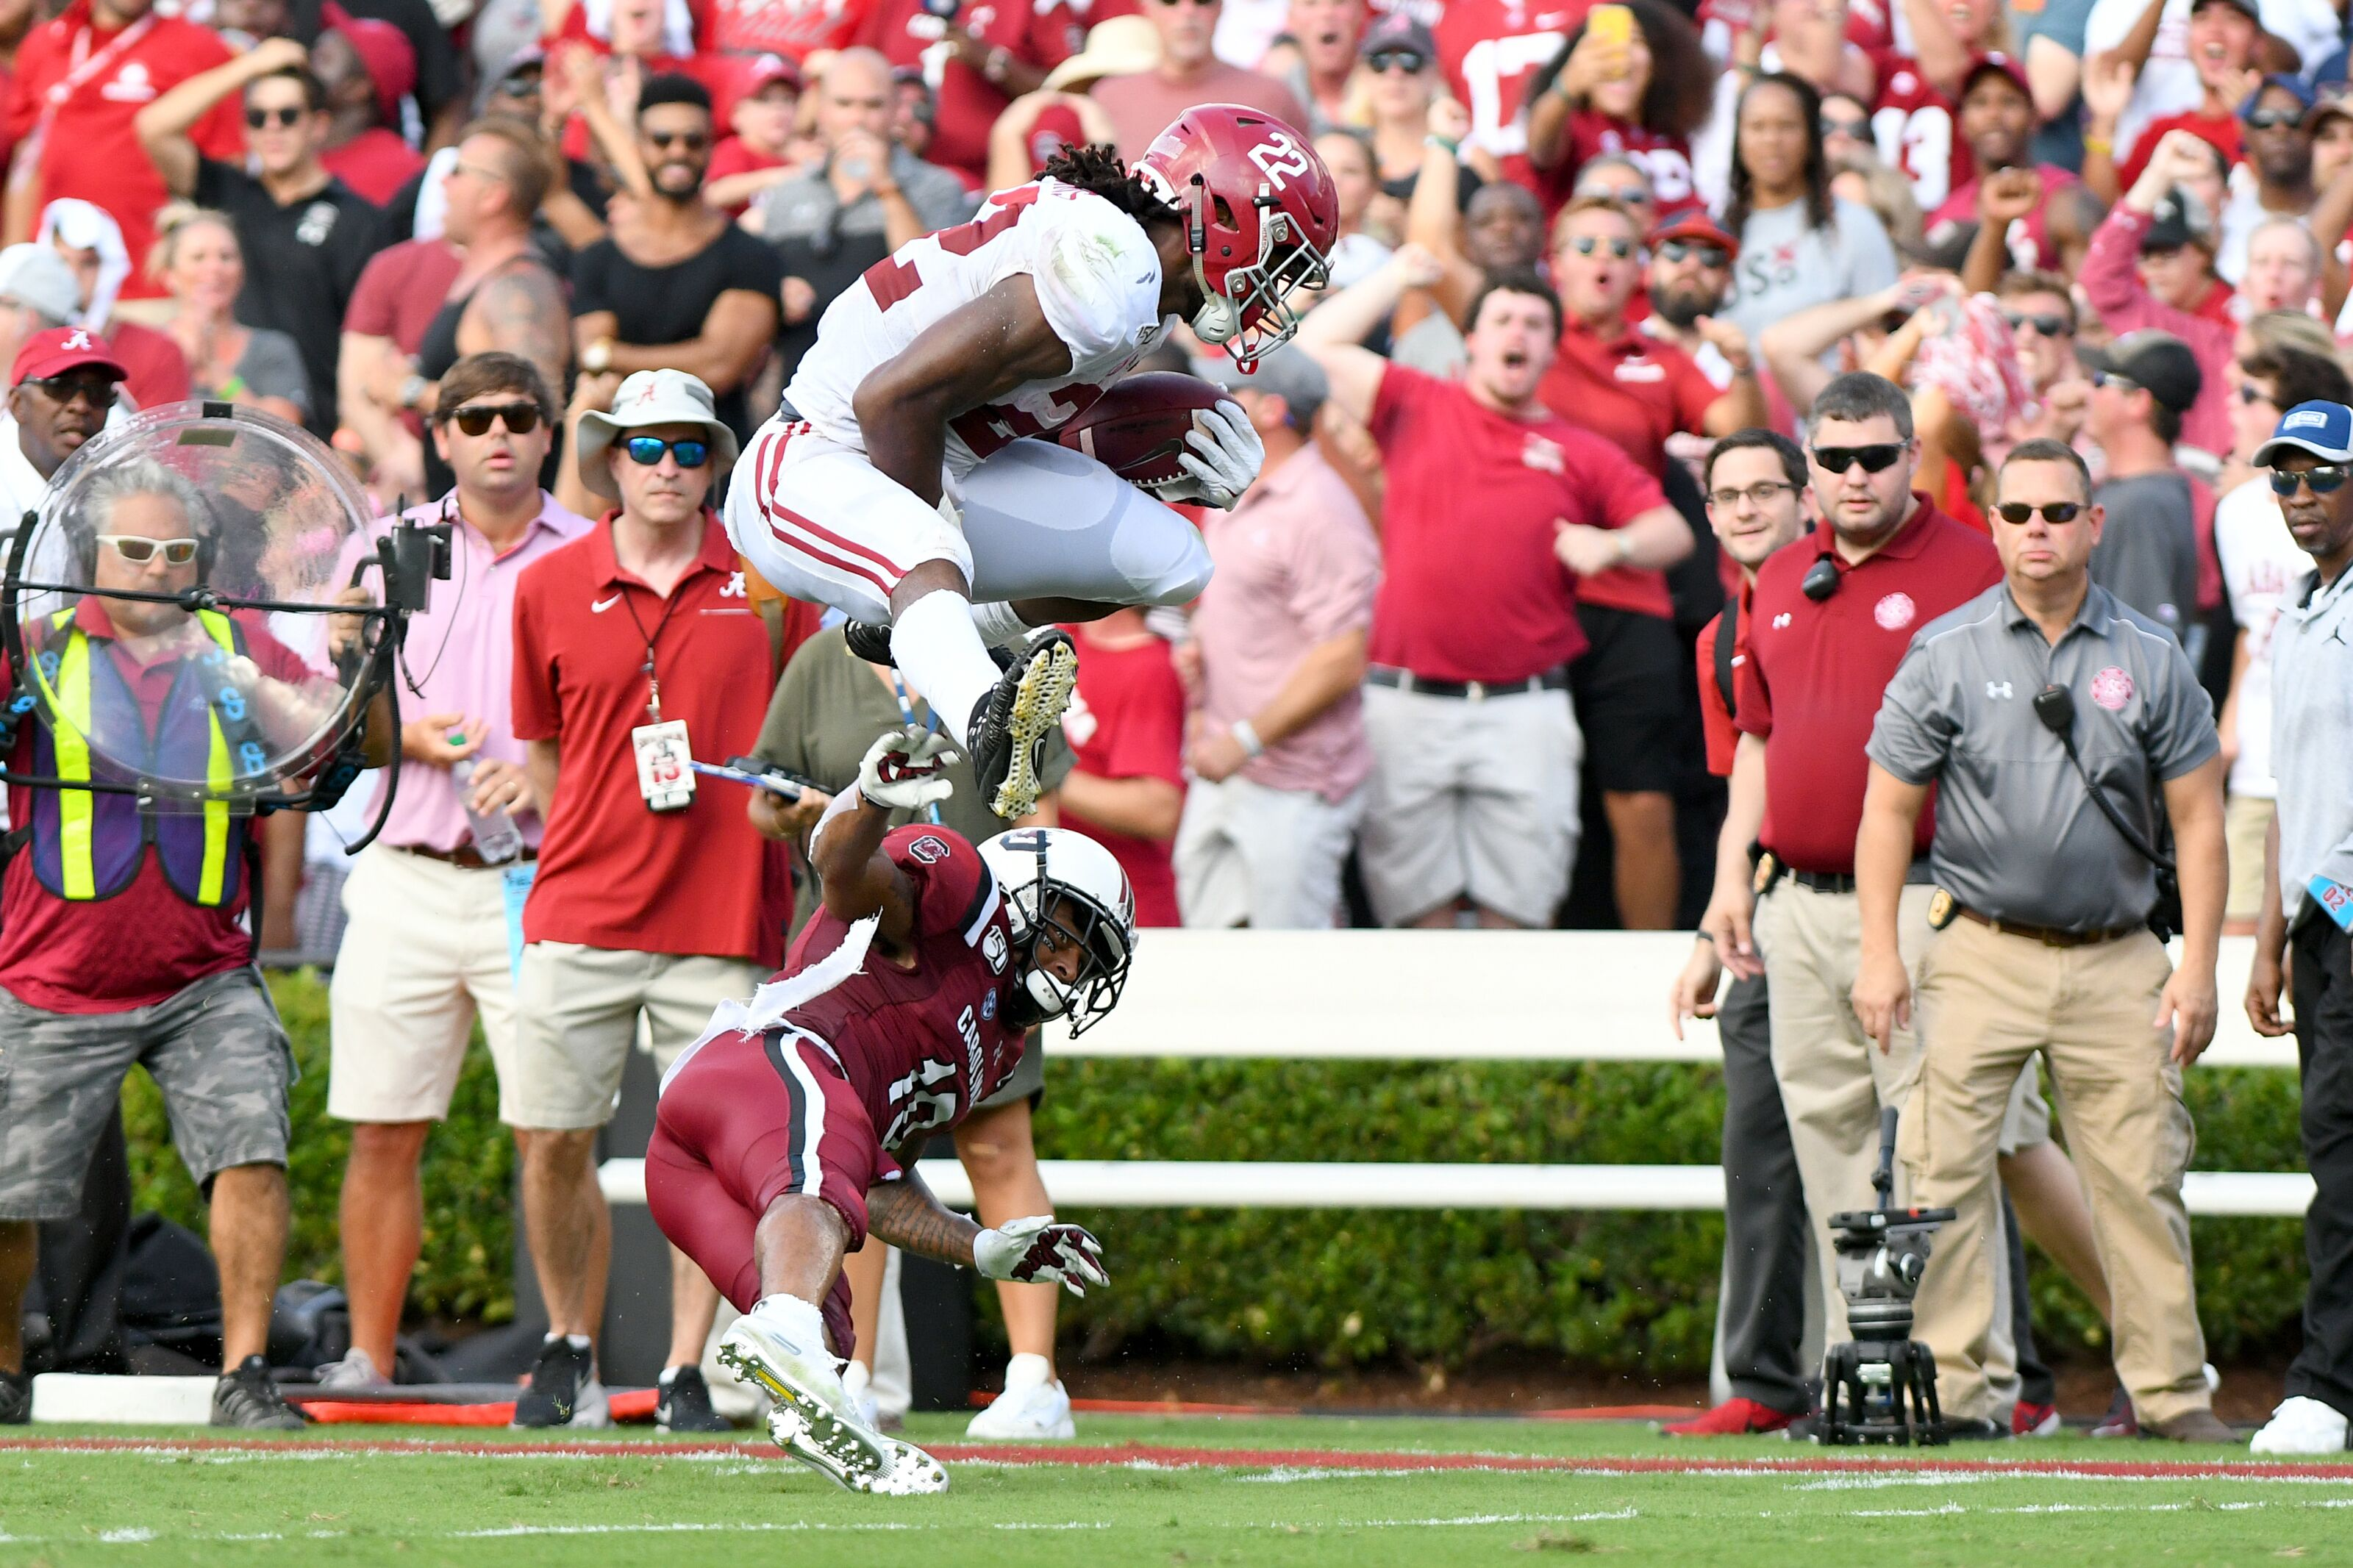 College football rankings: Top 10 team performances of Week 3 – Alabama nearly perfect